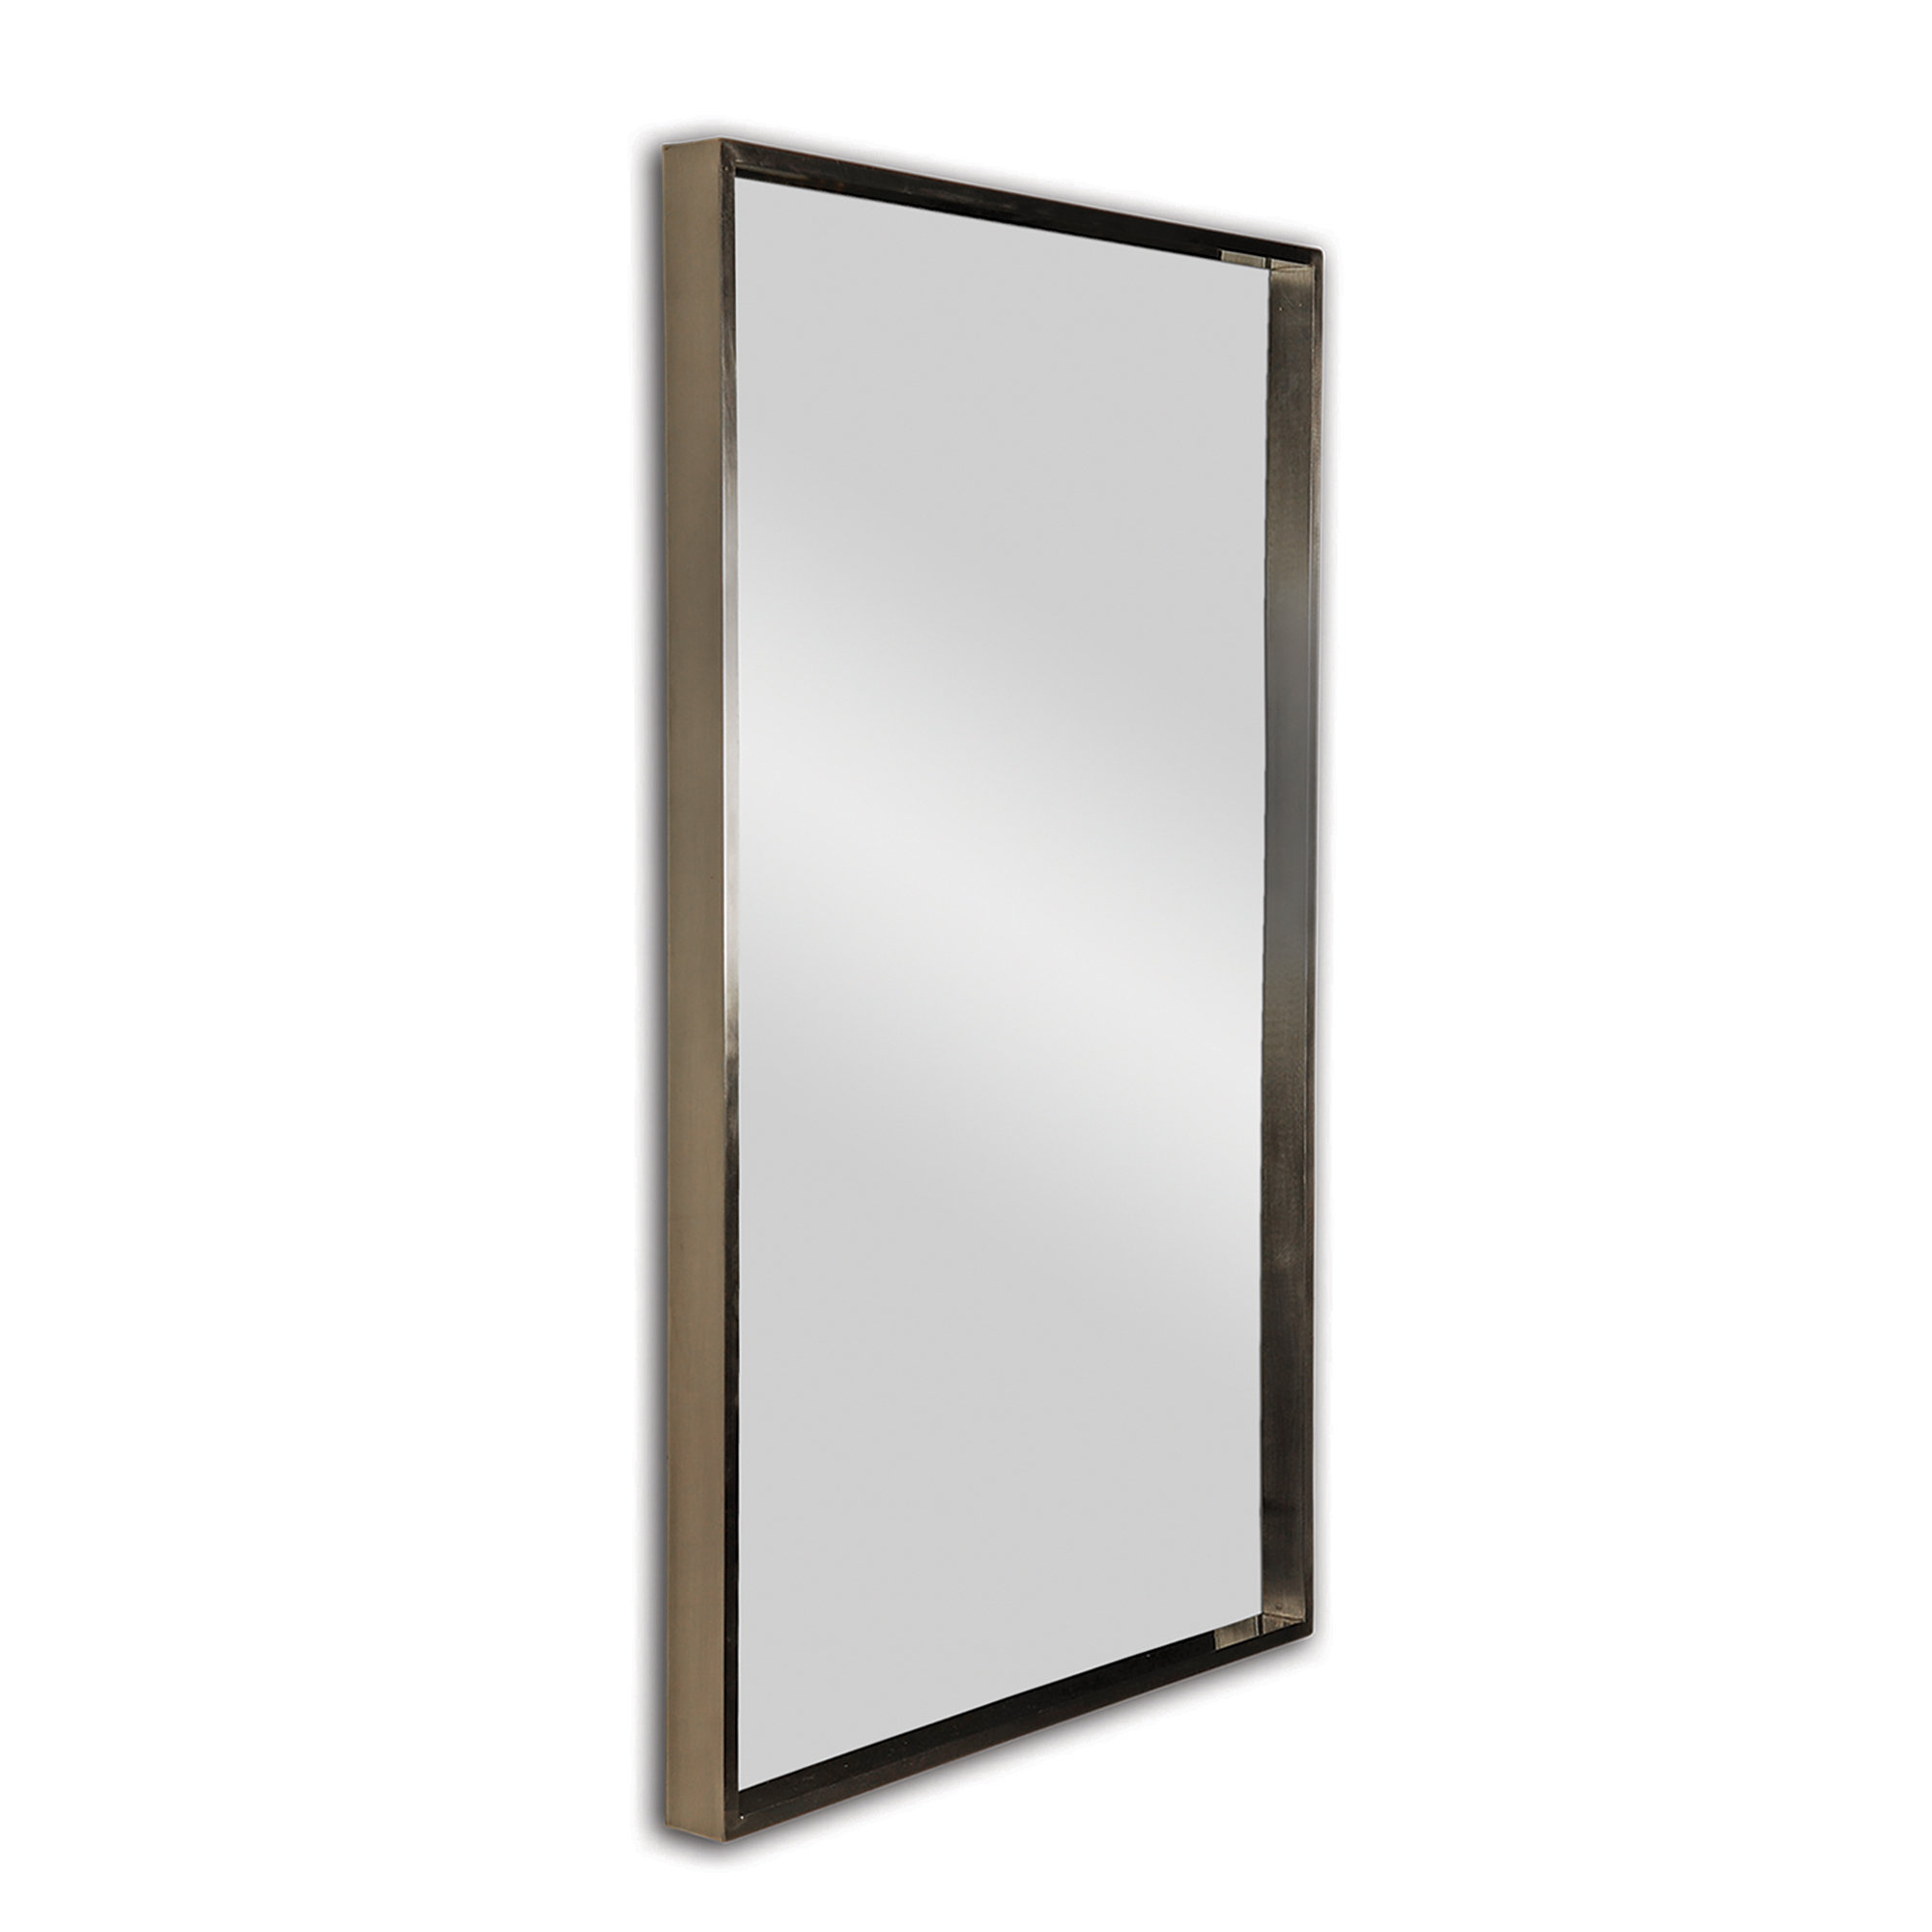 Most Current Modern & Contemporary Beveled Overmantel Mirrors With Regard To Nesbit Modern & Contemporary Accent Mirror (View 18 of 20)